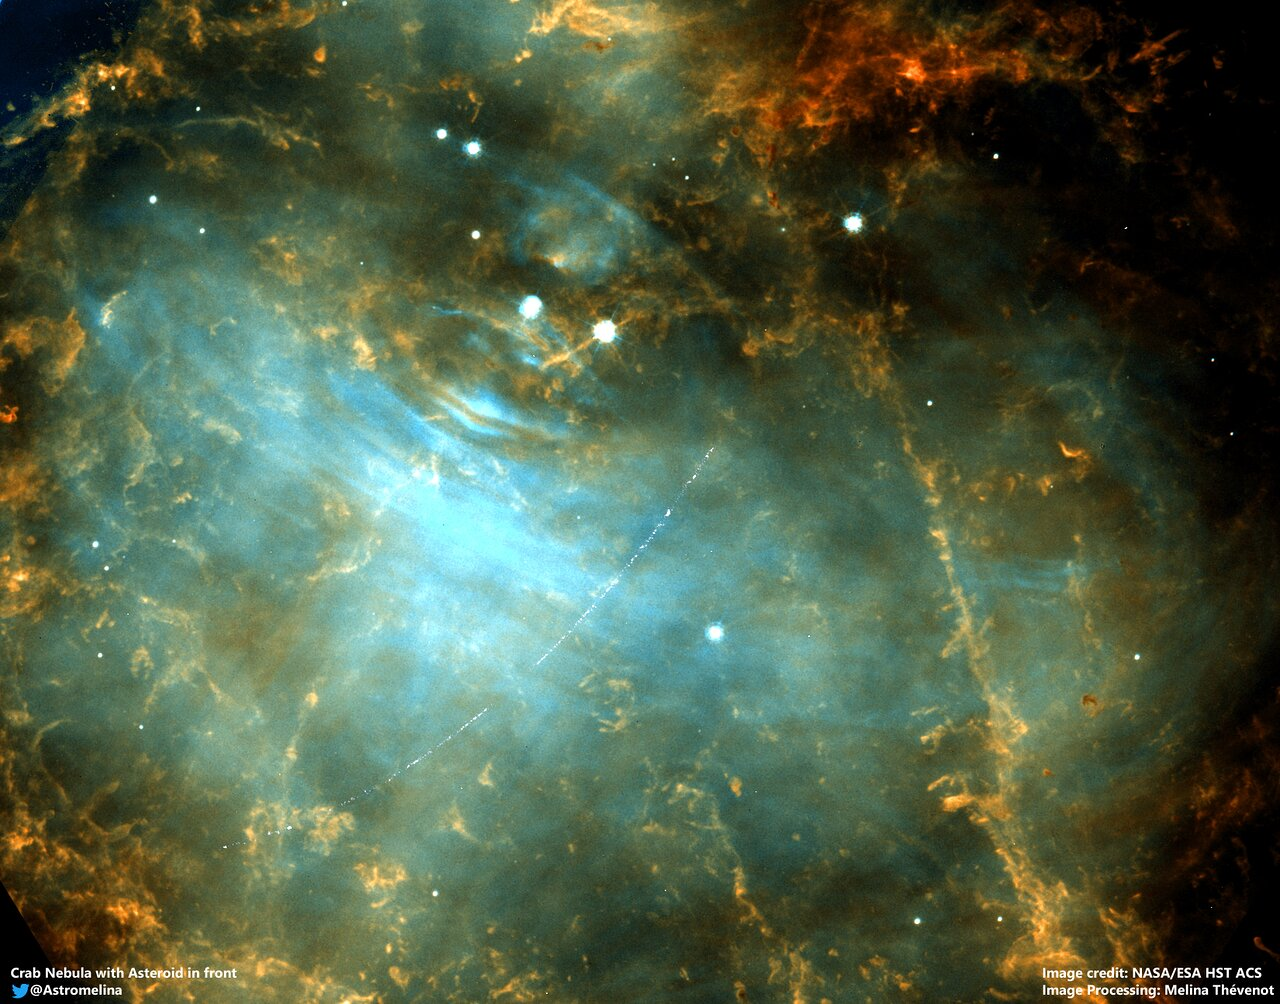 Asteroid in the Crab Nebula (M1)